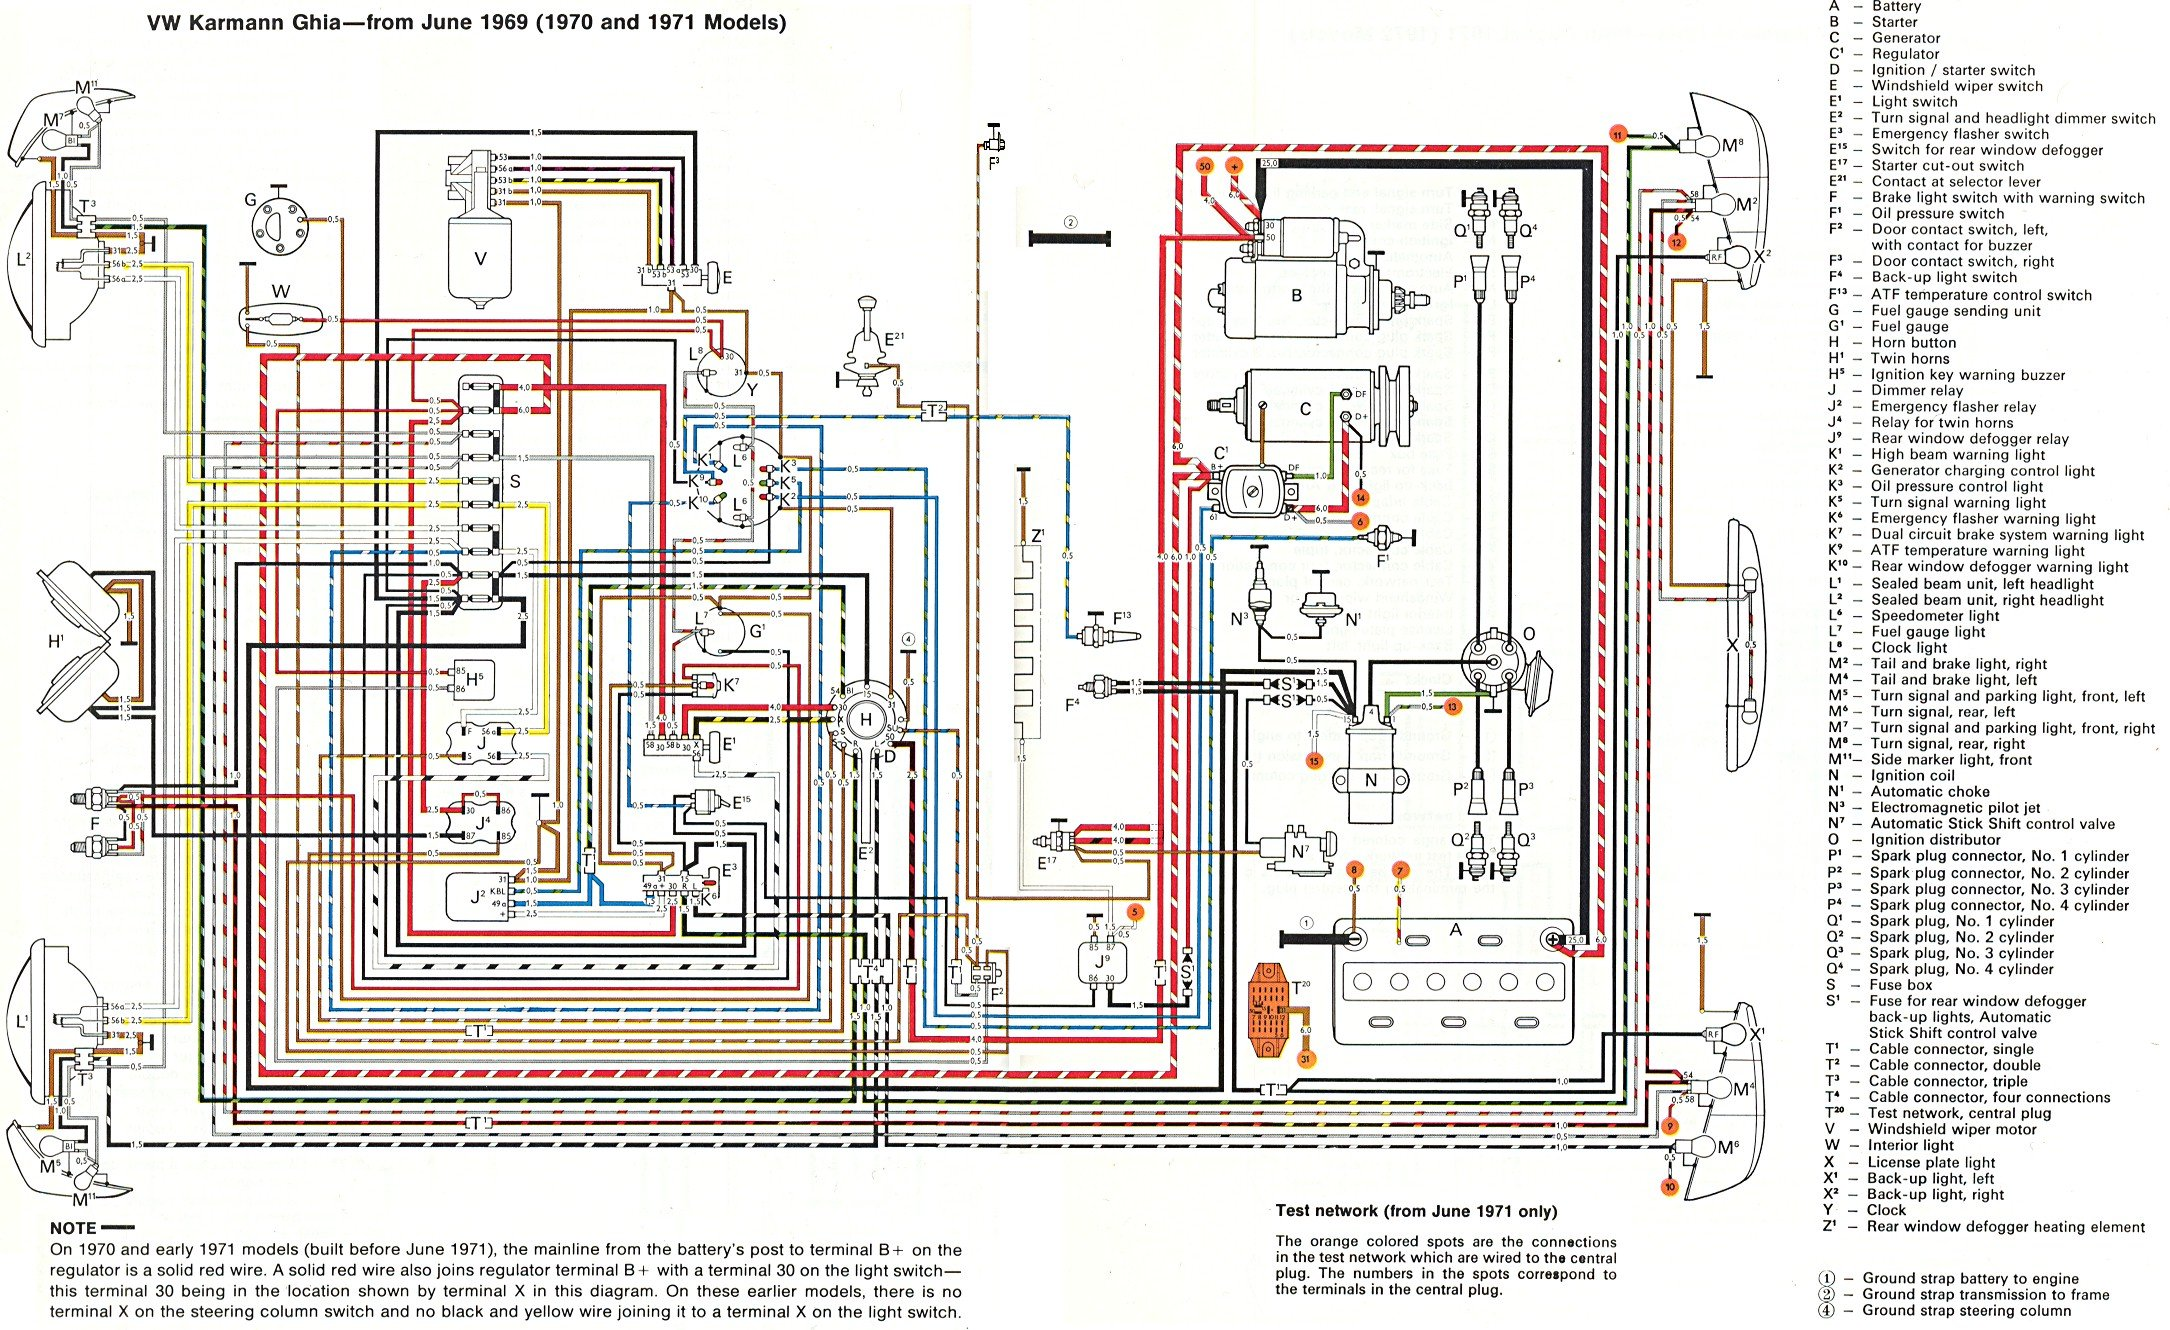 1967 Firebird Fuse Box Layout Reinvent Your Wiring Diagram 2014 Camaro Location 1970 Vw Karmann Ghia Electrical Schematics Rh Culturetearoom Com Vtx 1800